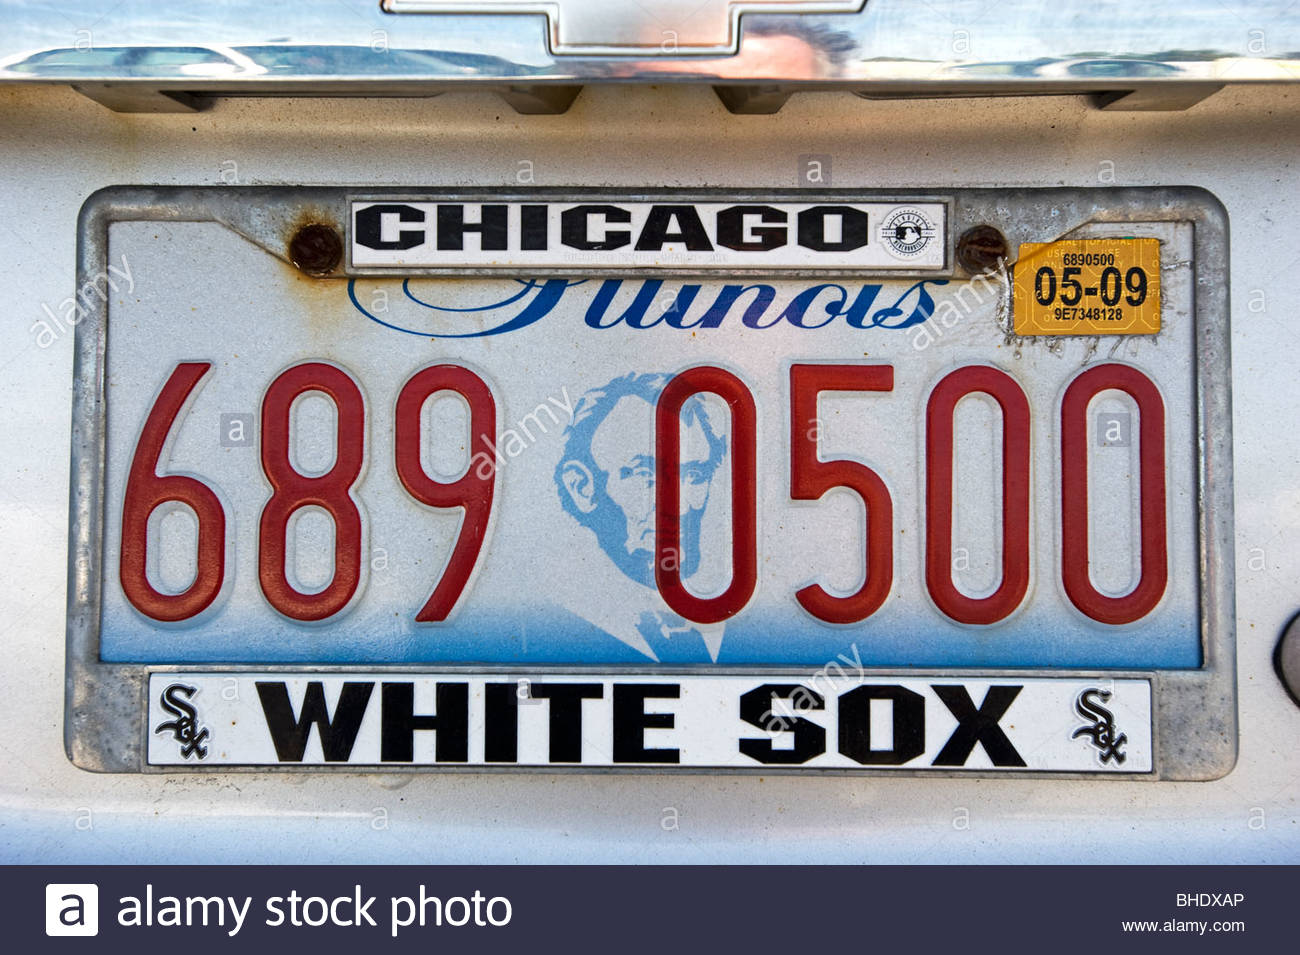 Car plate with the name of the white sox, the Chicago baseball team. Chicago, Illinois, Usa - Stock Image